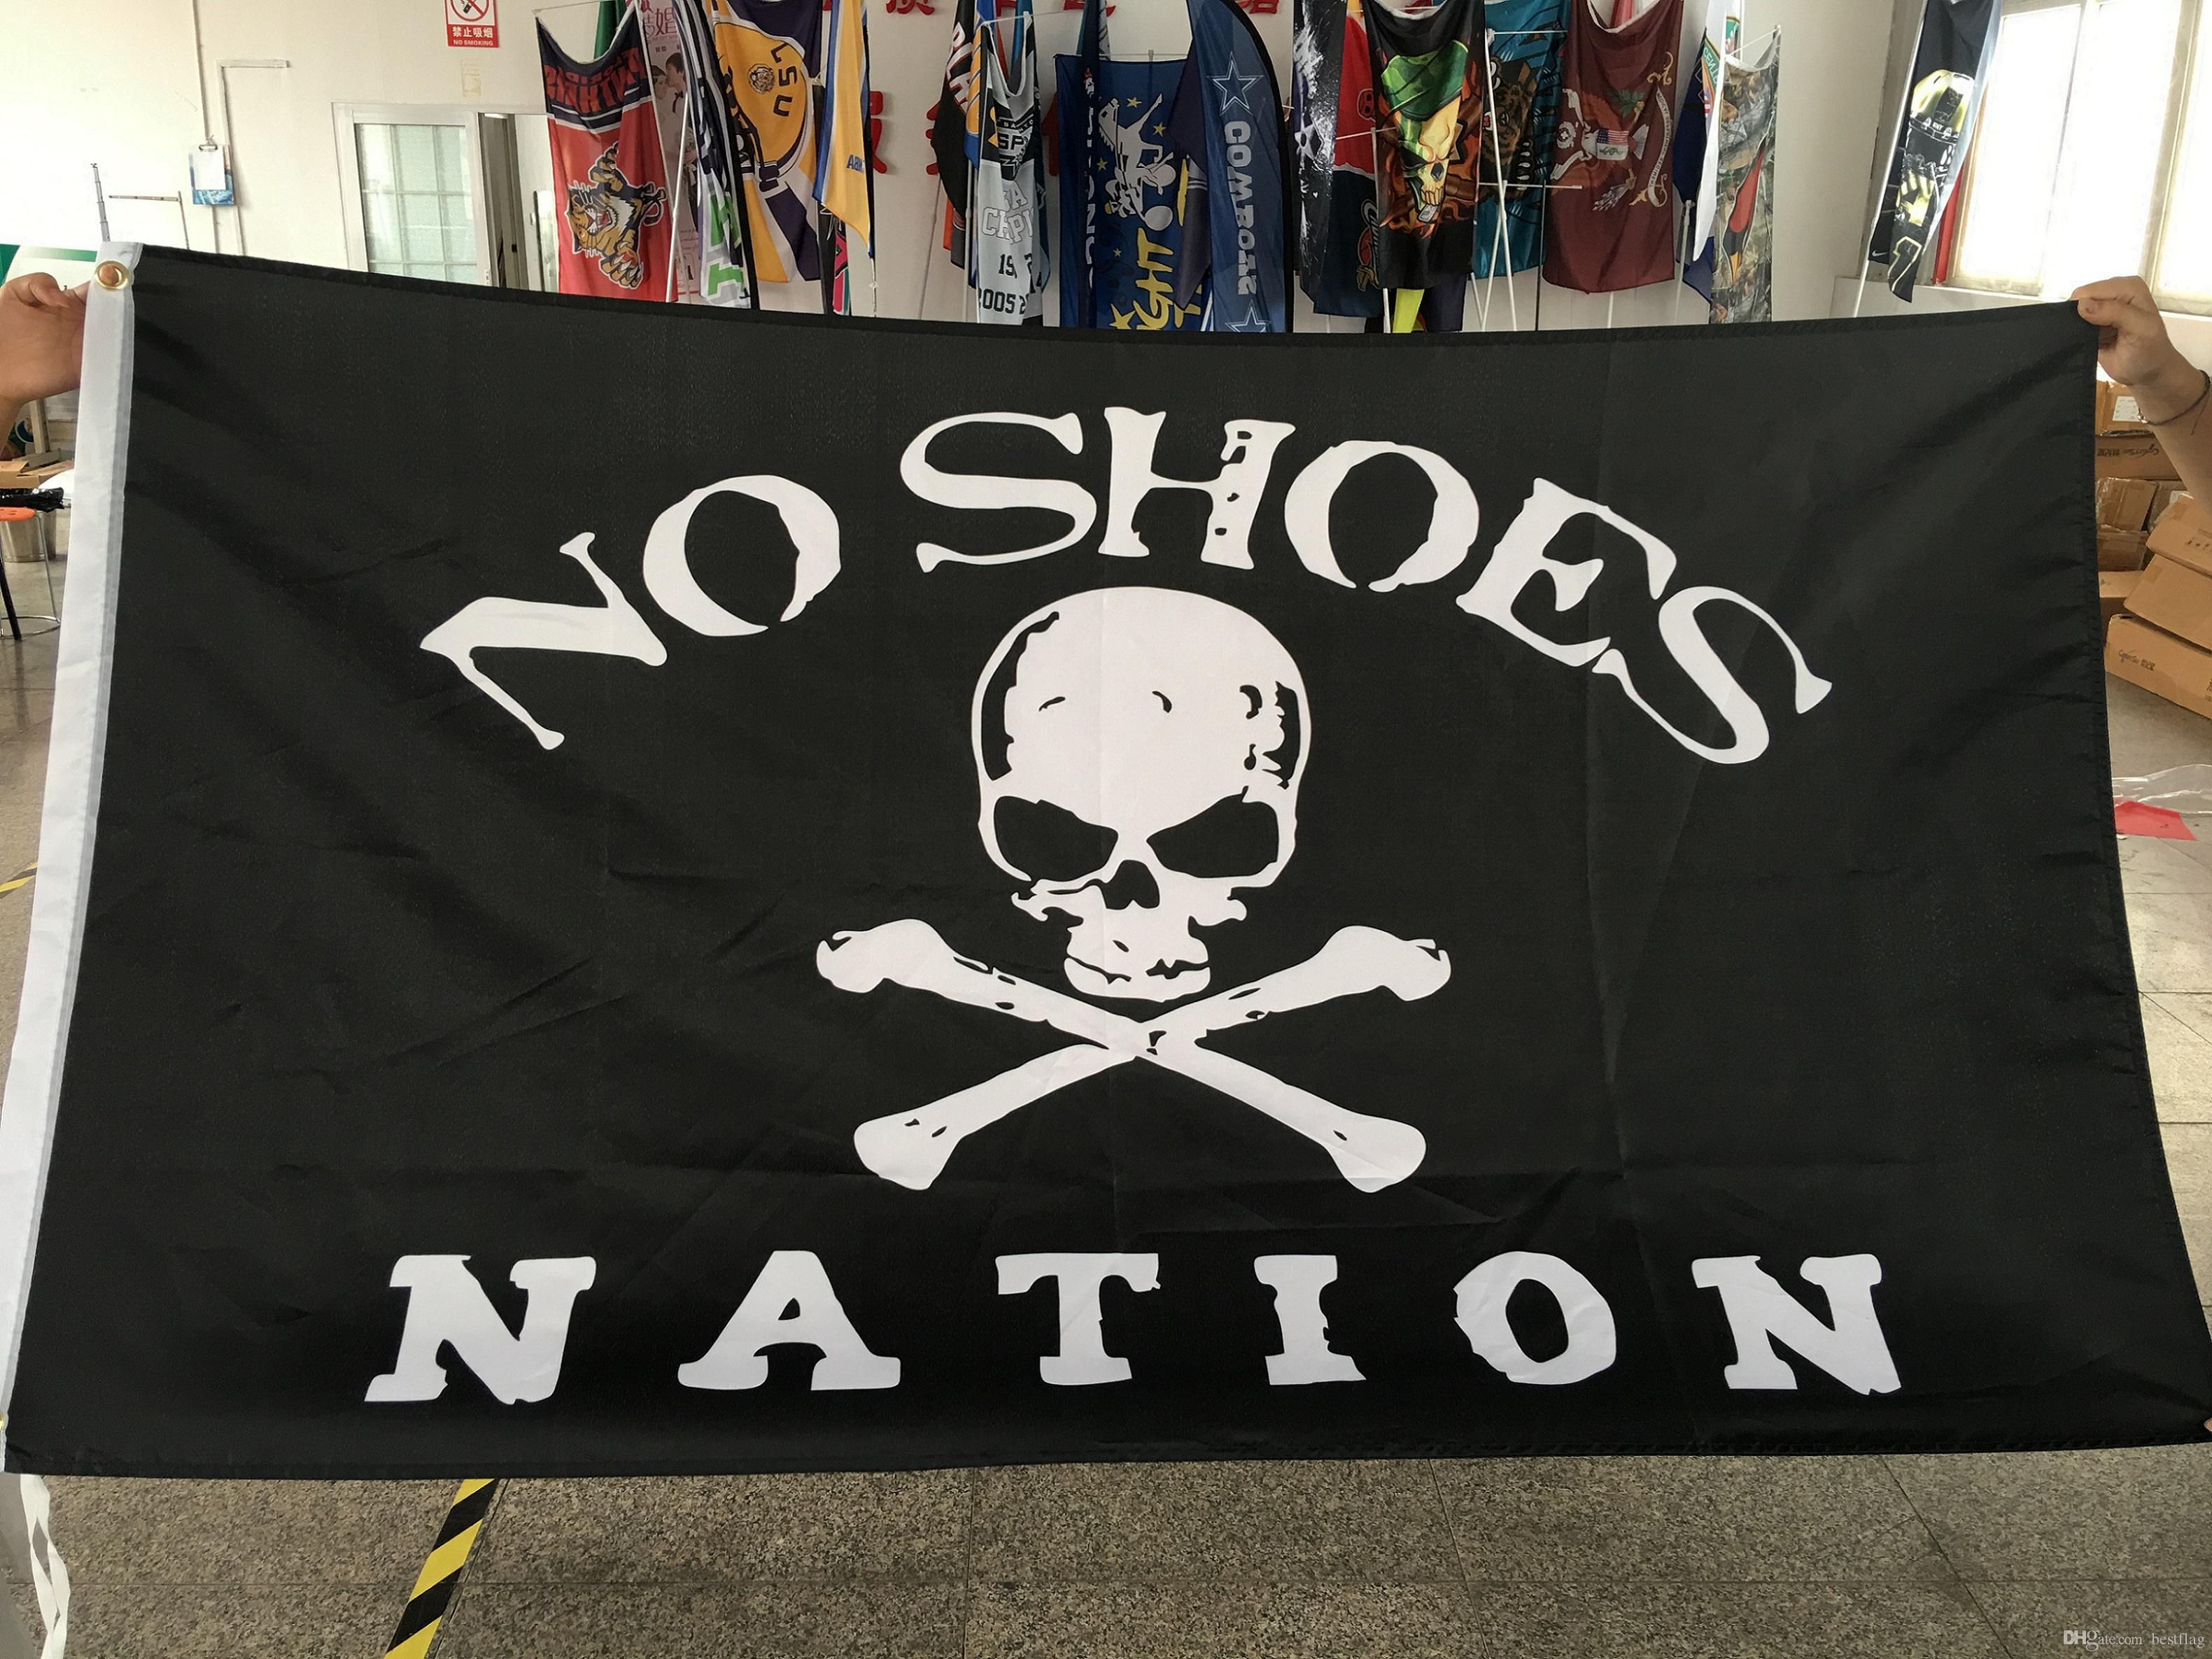 Nation No Shoes Custom Flag Flying Design 3x5 ft 100D Polyester Banners with Two Metal Grommets